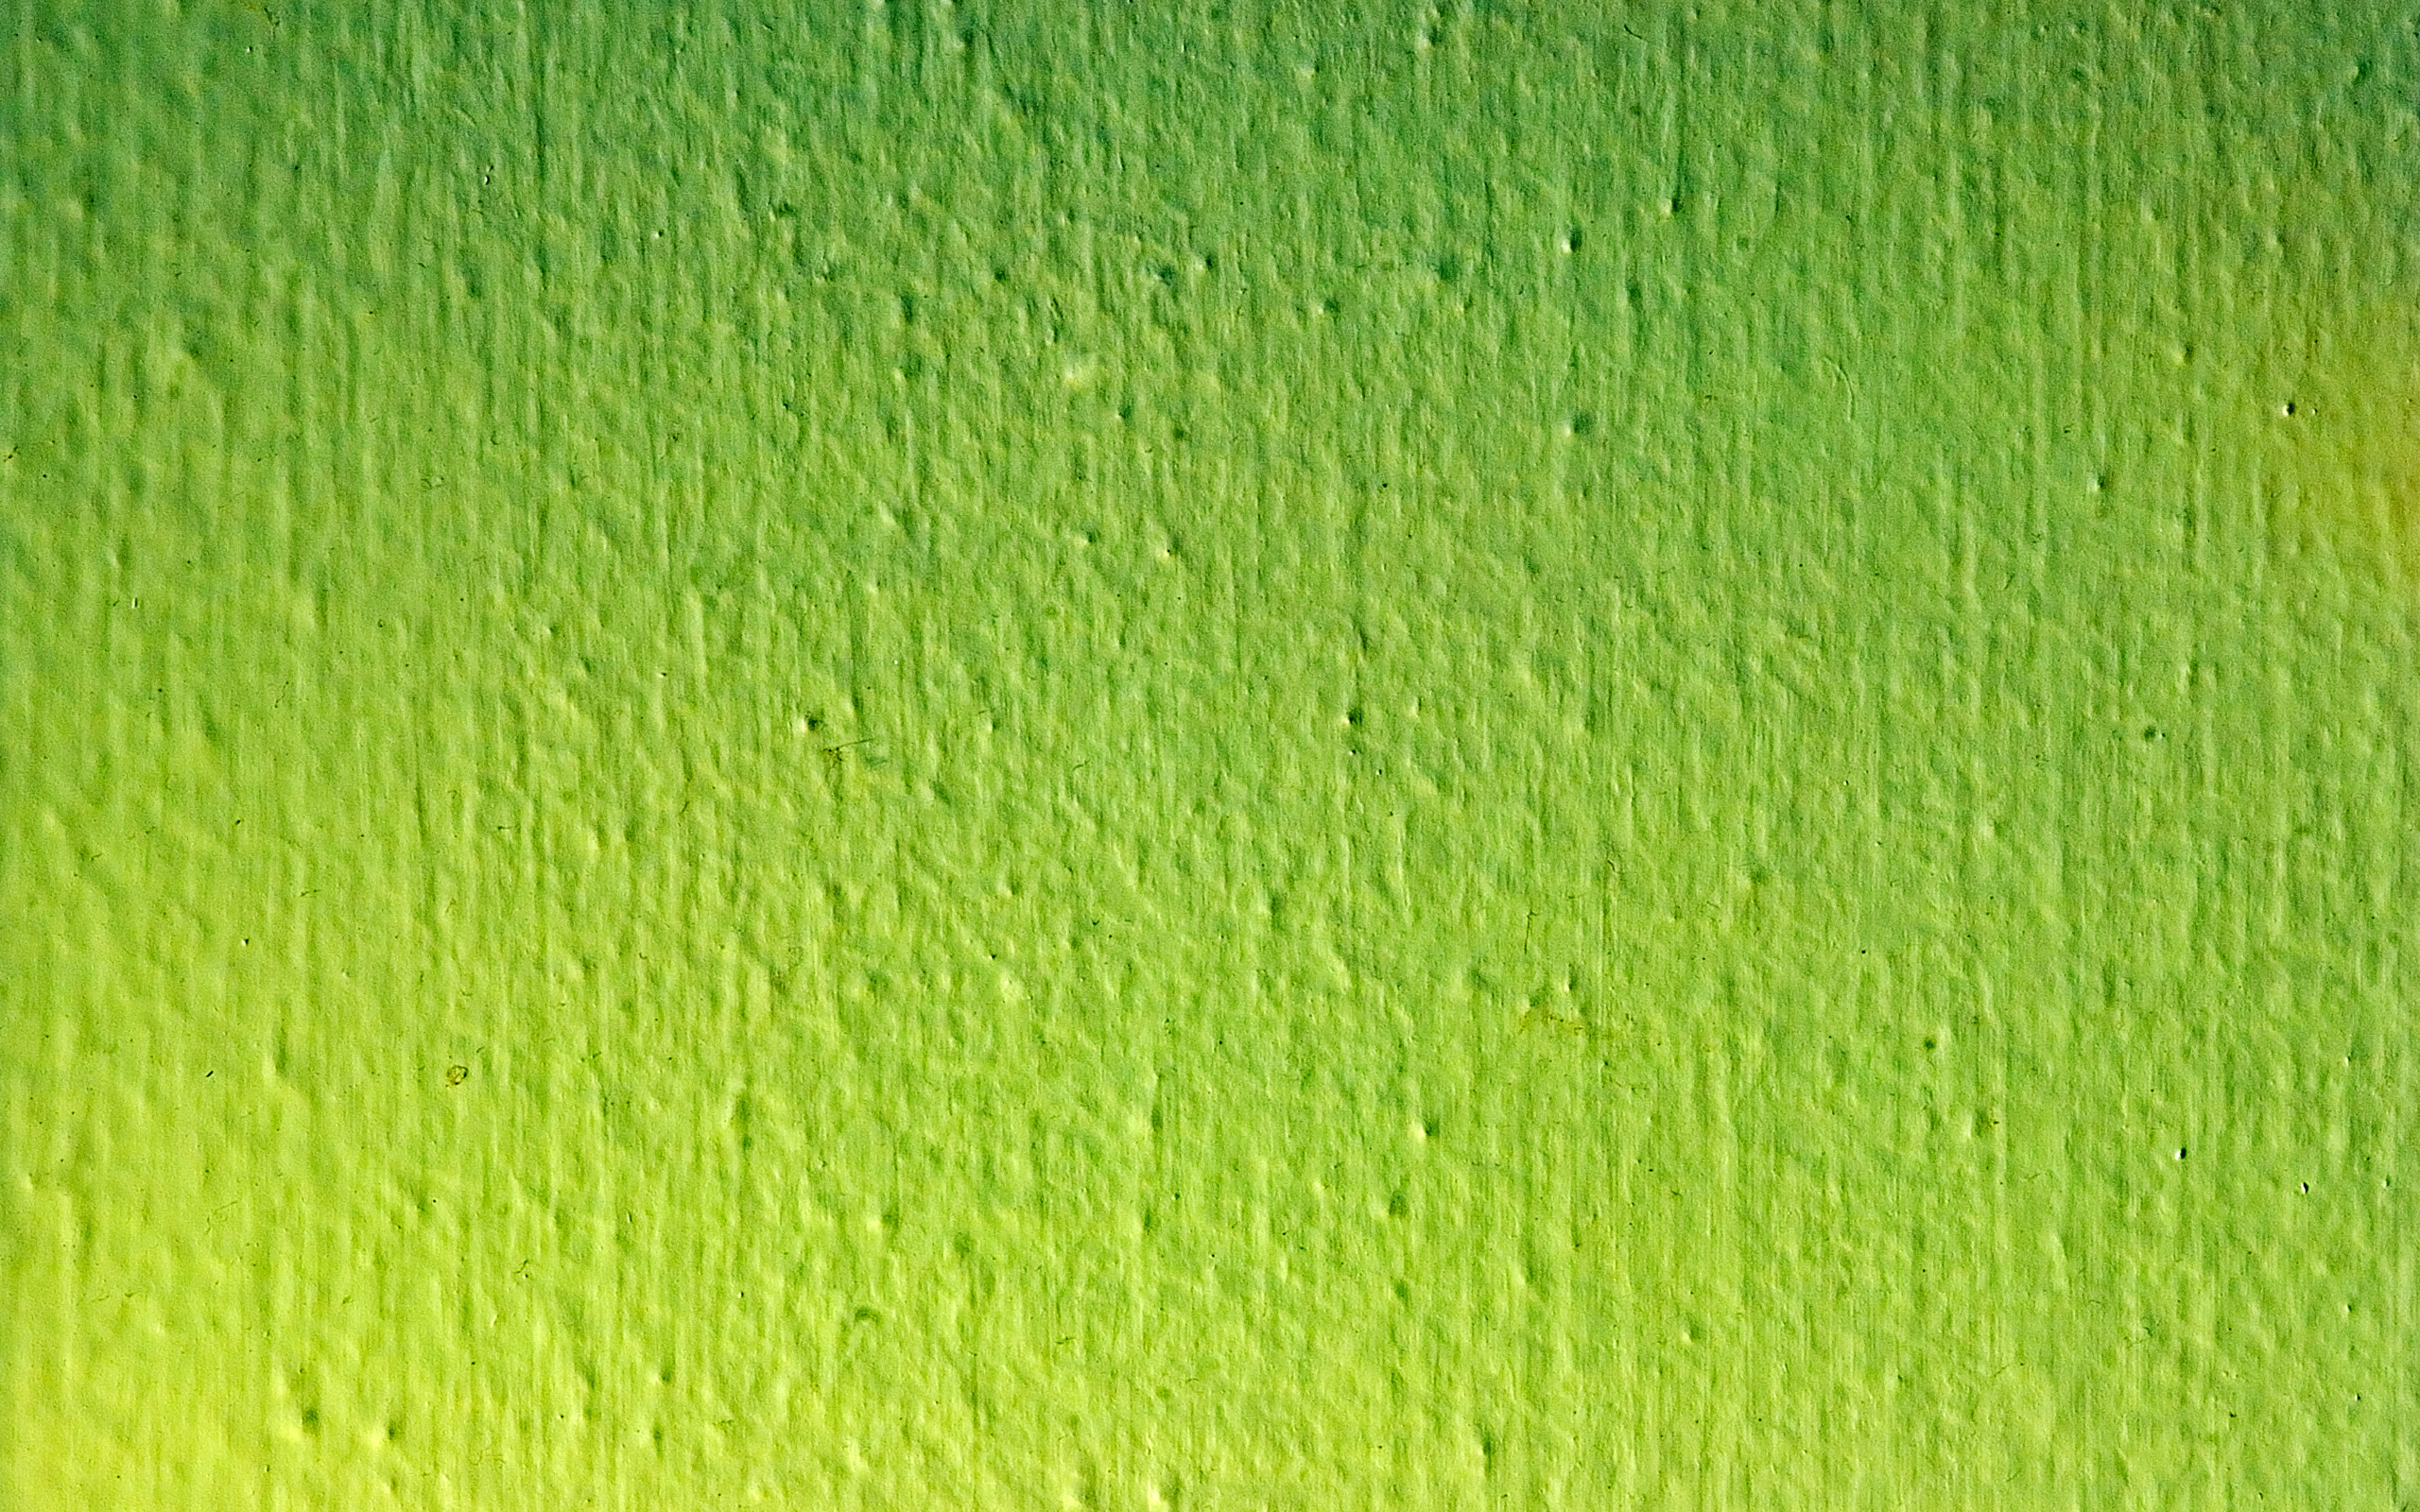 2560x1600 hd green for home wallpaper #12000